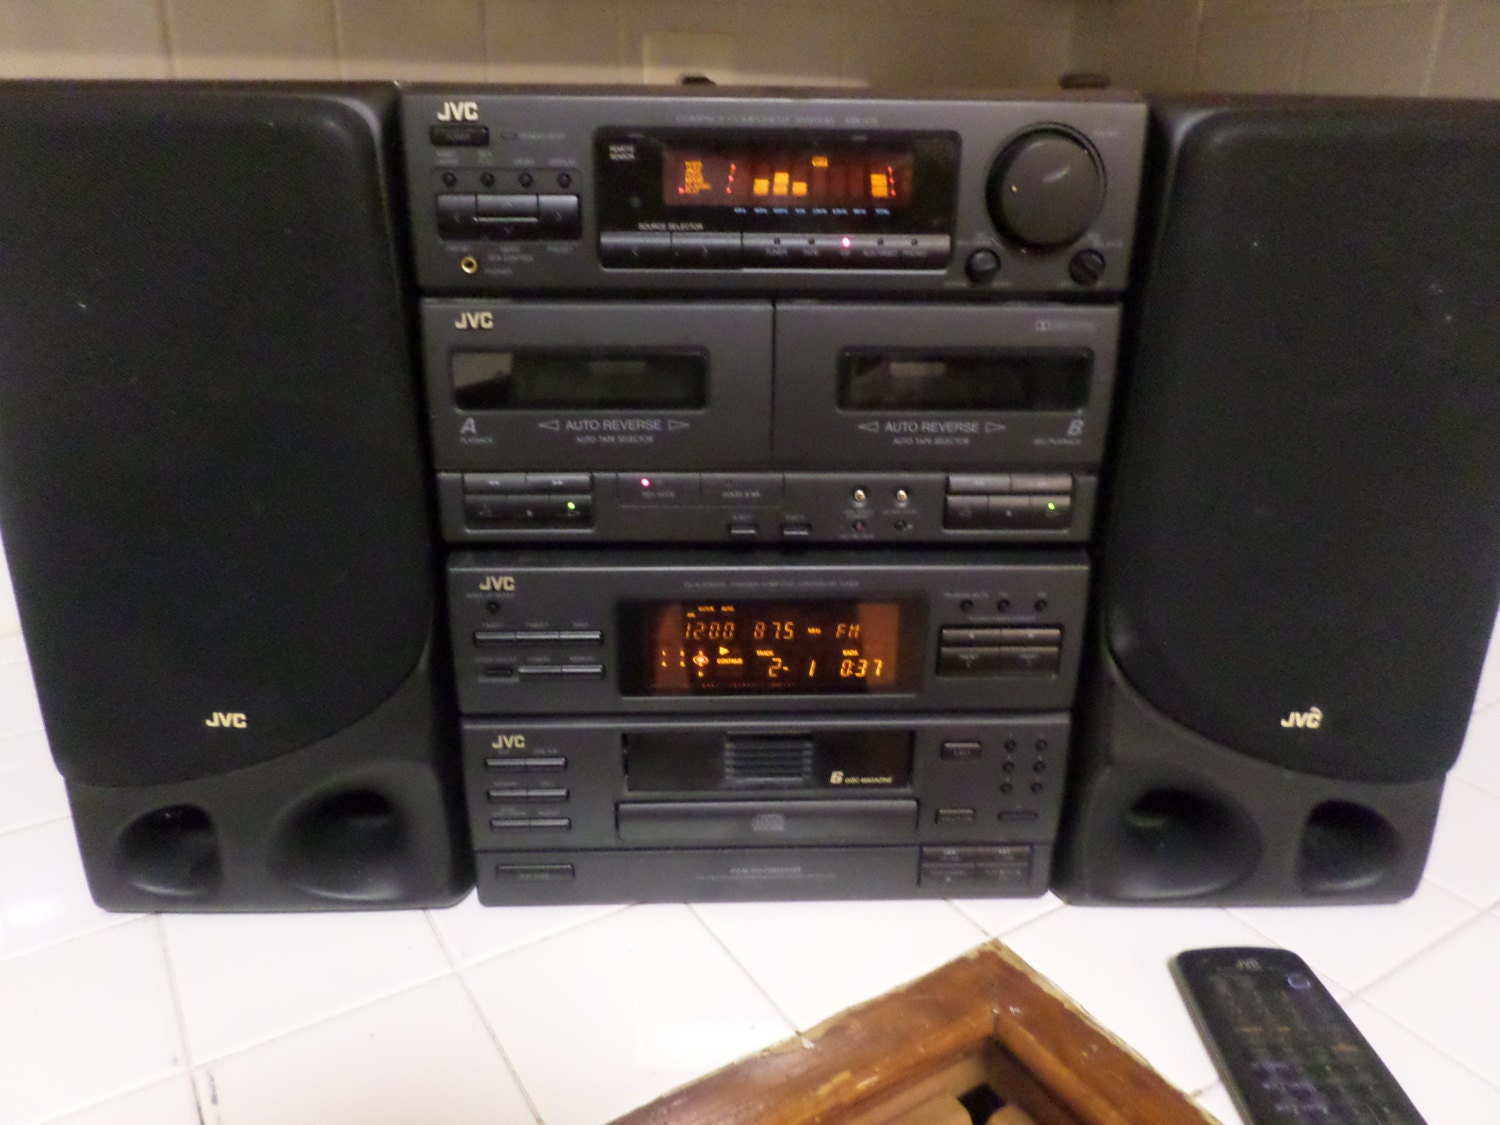 Early 1990s Jvc Home Stereo System on zoom portable cd player